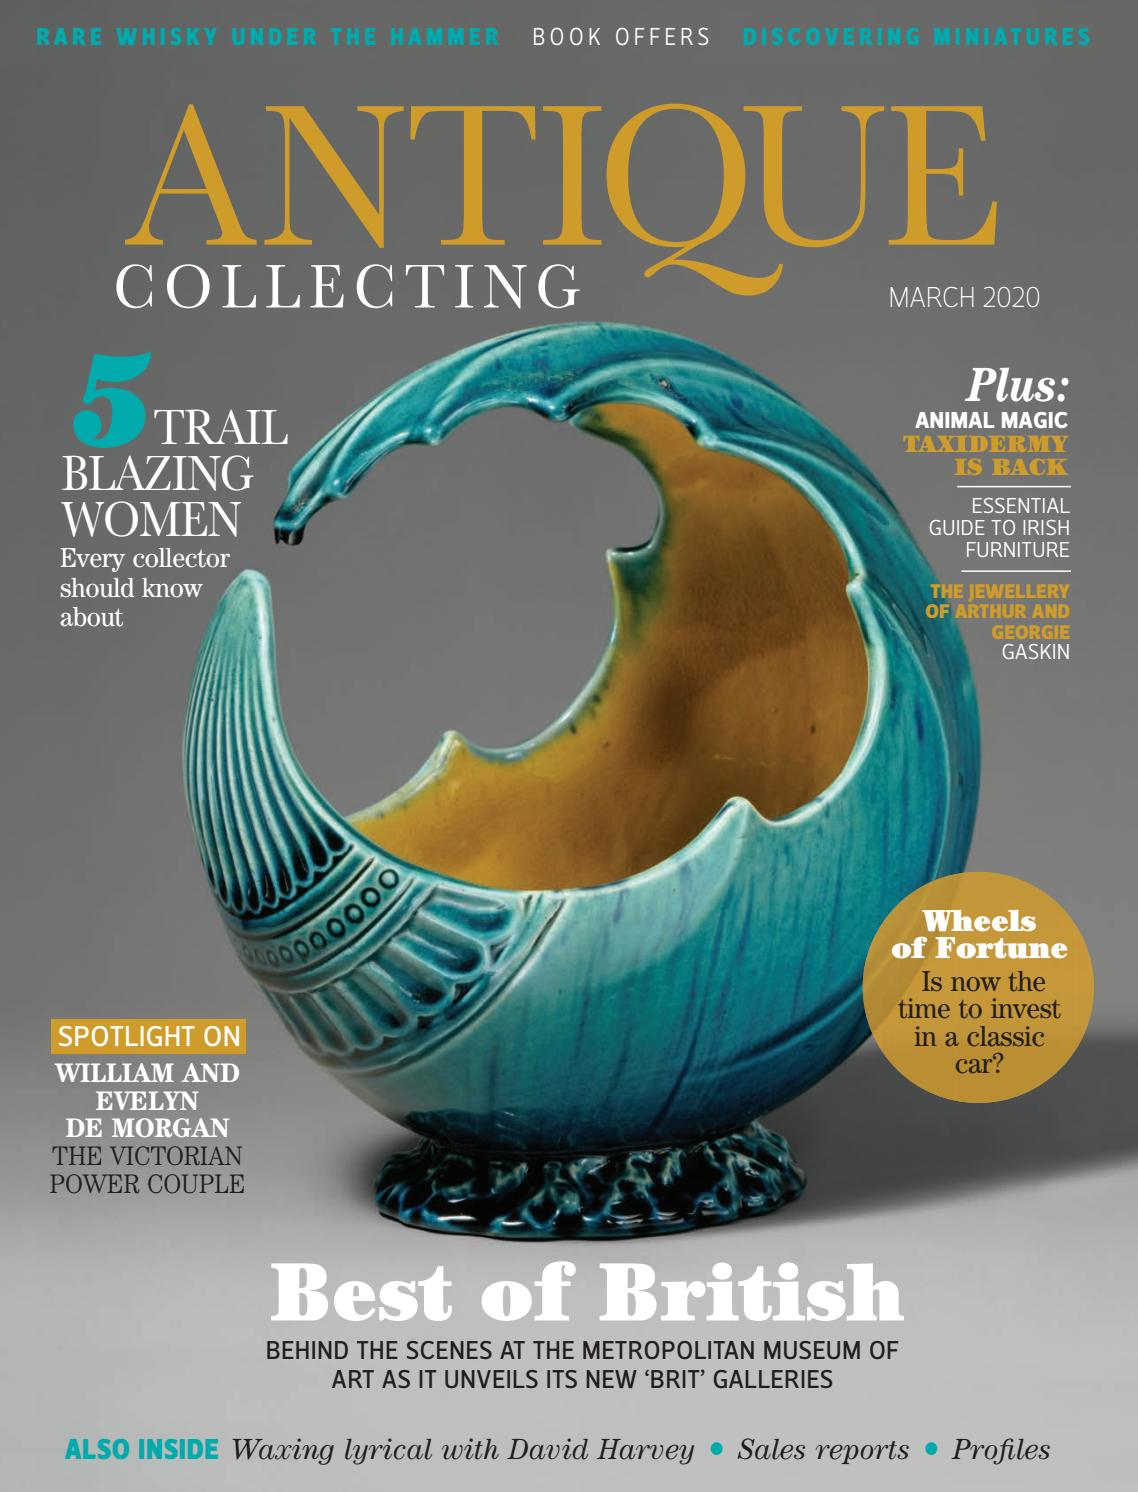 Antique Collecting Magazine March 2020 Issue By Acc Art Books Issuu